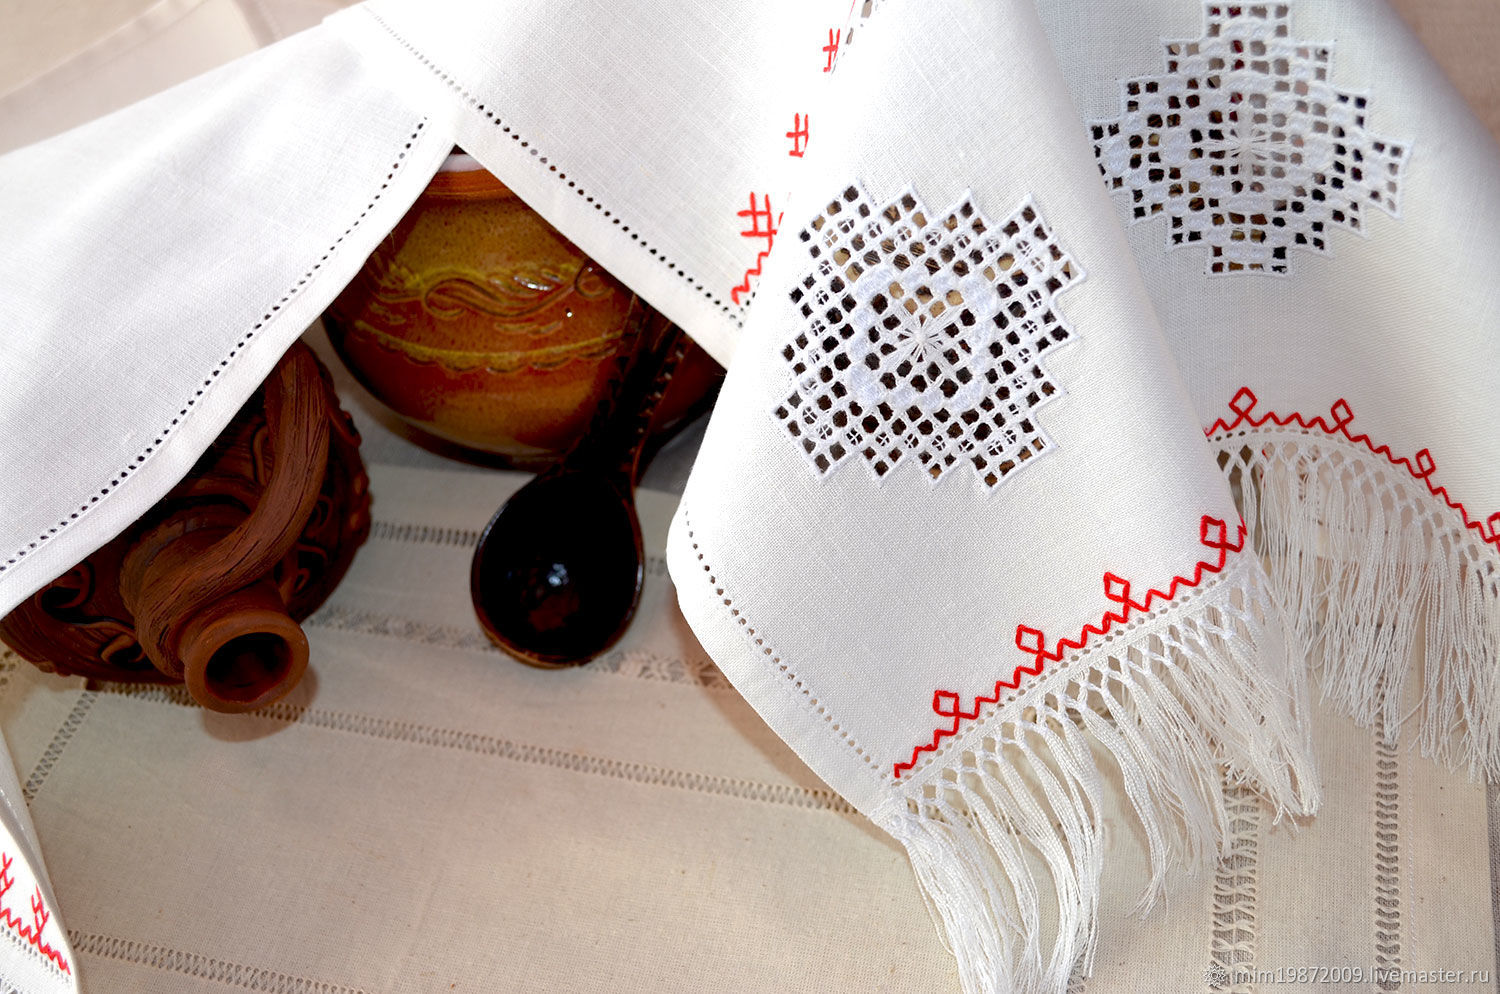 white linen towel with embroidery for wedding, for wedding, decoration for home, strojeva embroidery, purity, modesty, Russian style, Russian traditions, the red floss, Easter